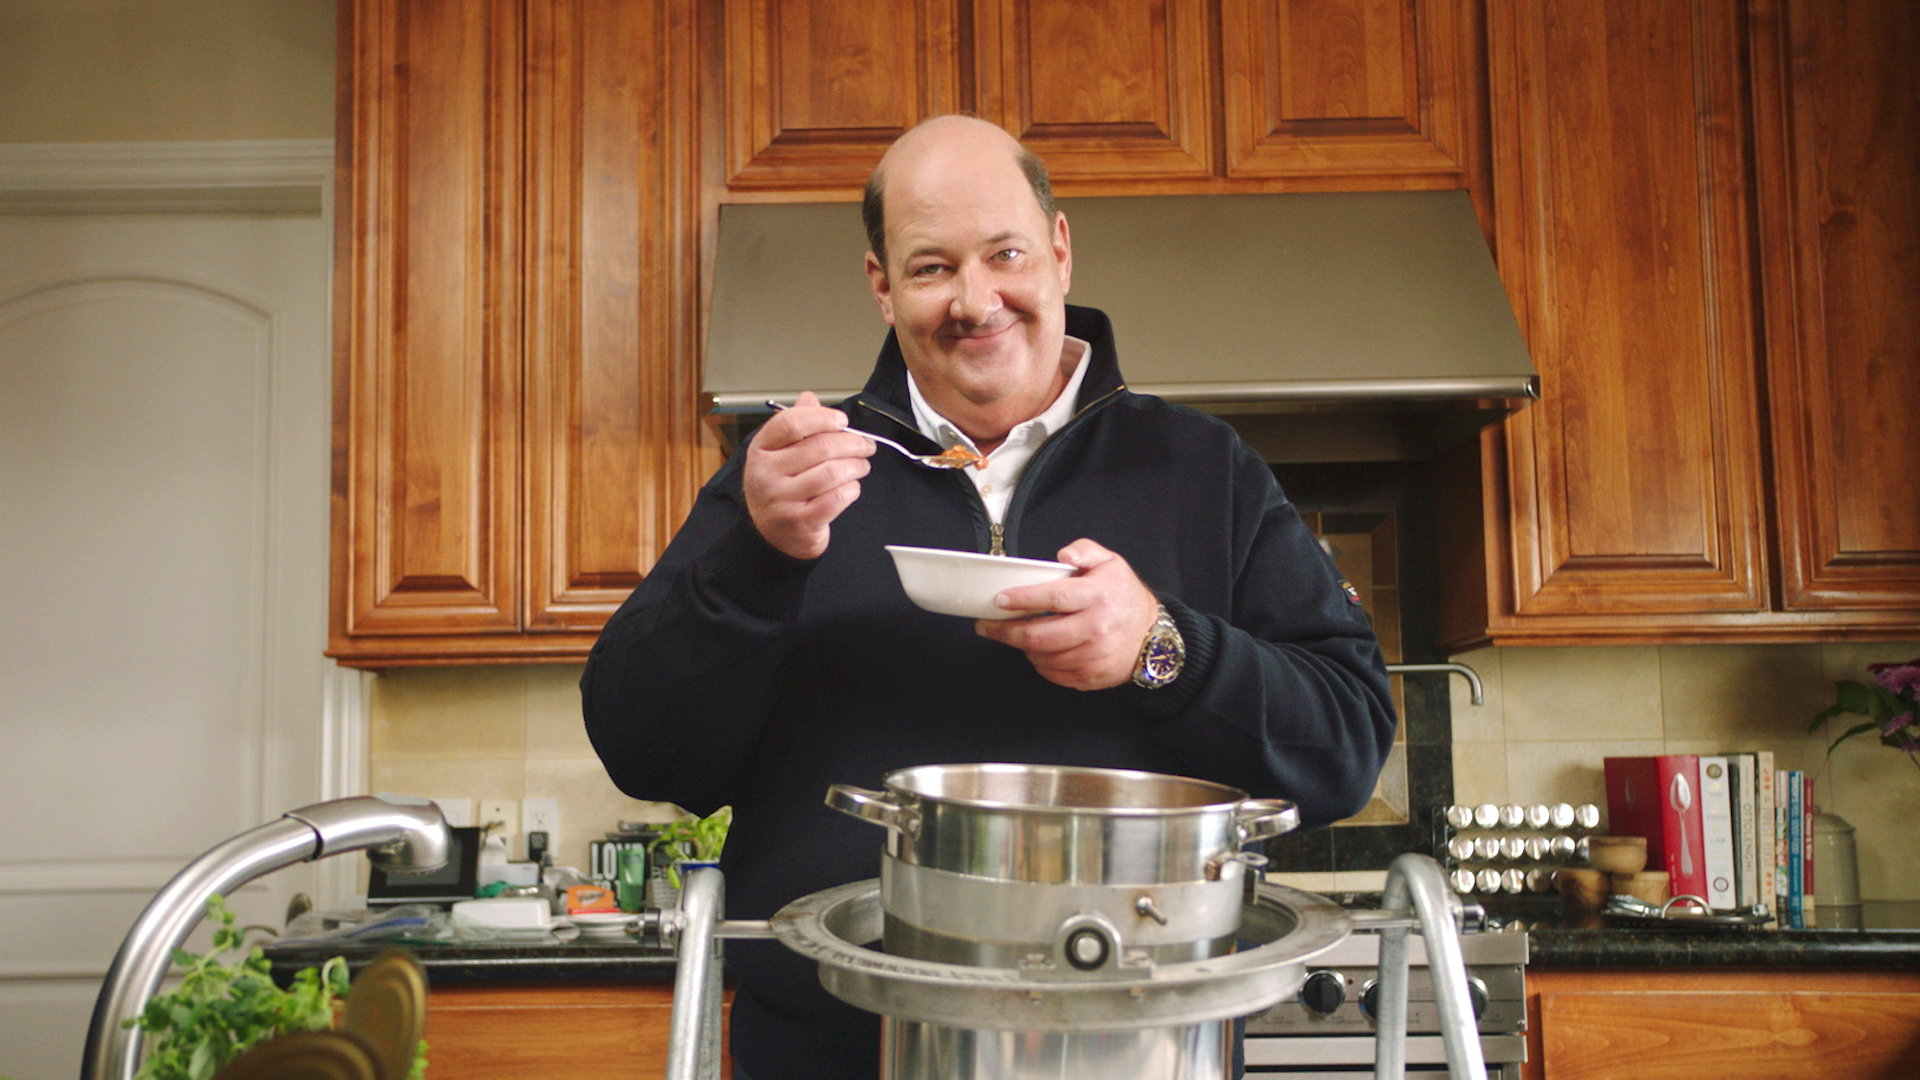 Brian Baumgartner eating chili